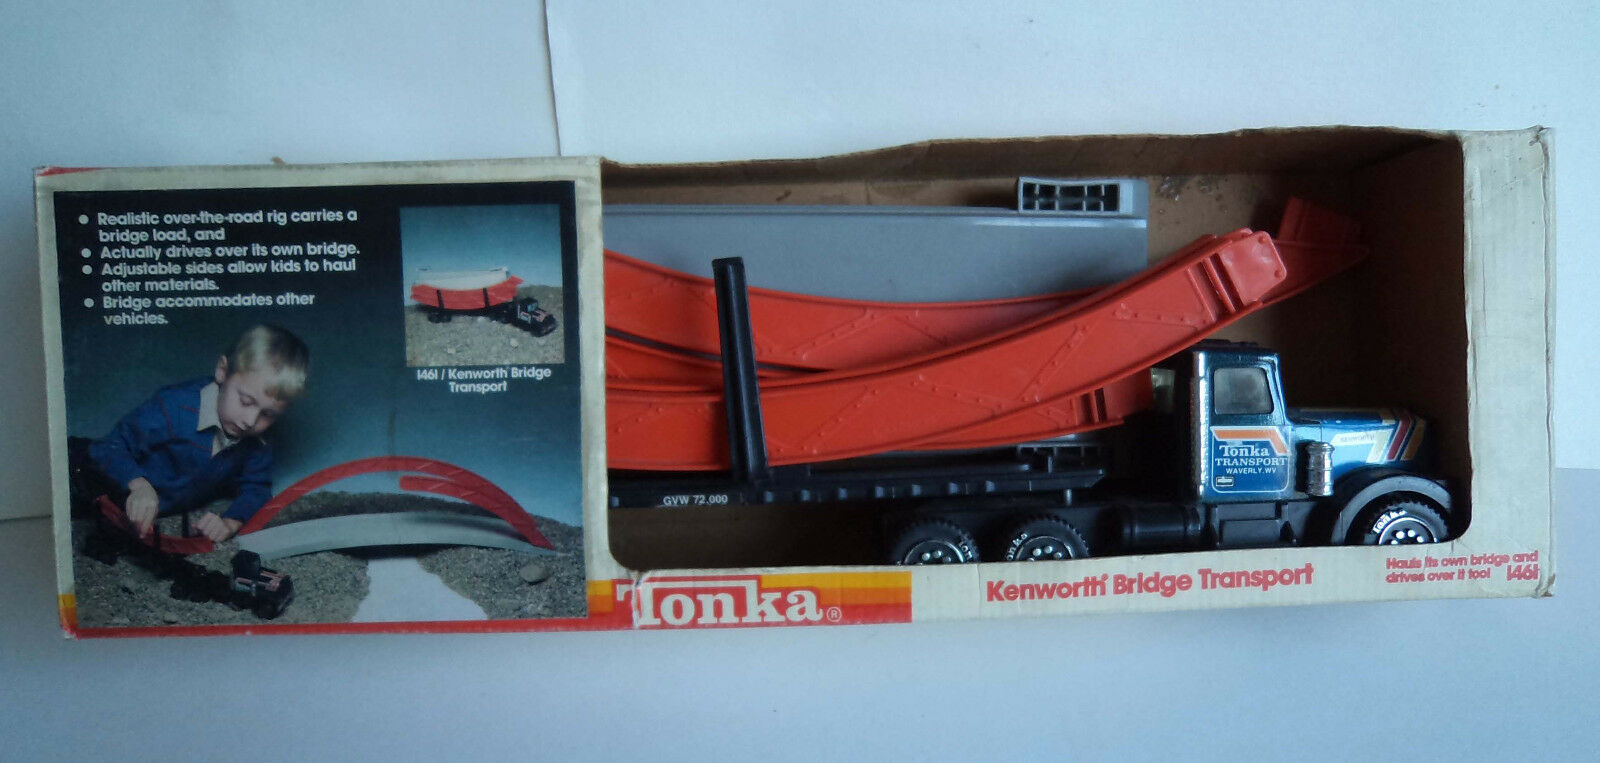 Vintage 1984 Tonka Toys Kenilworth Bridge Transporter Articulated Lorry 15.5